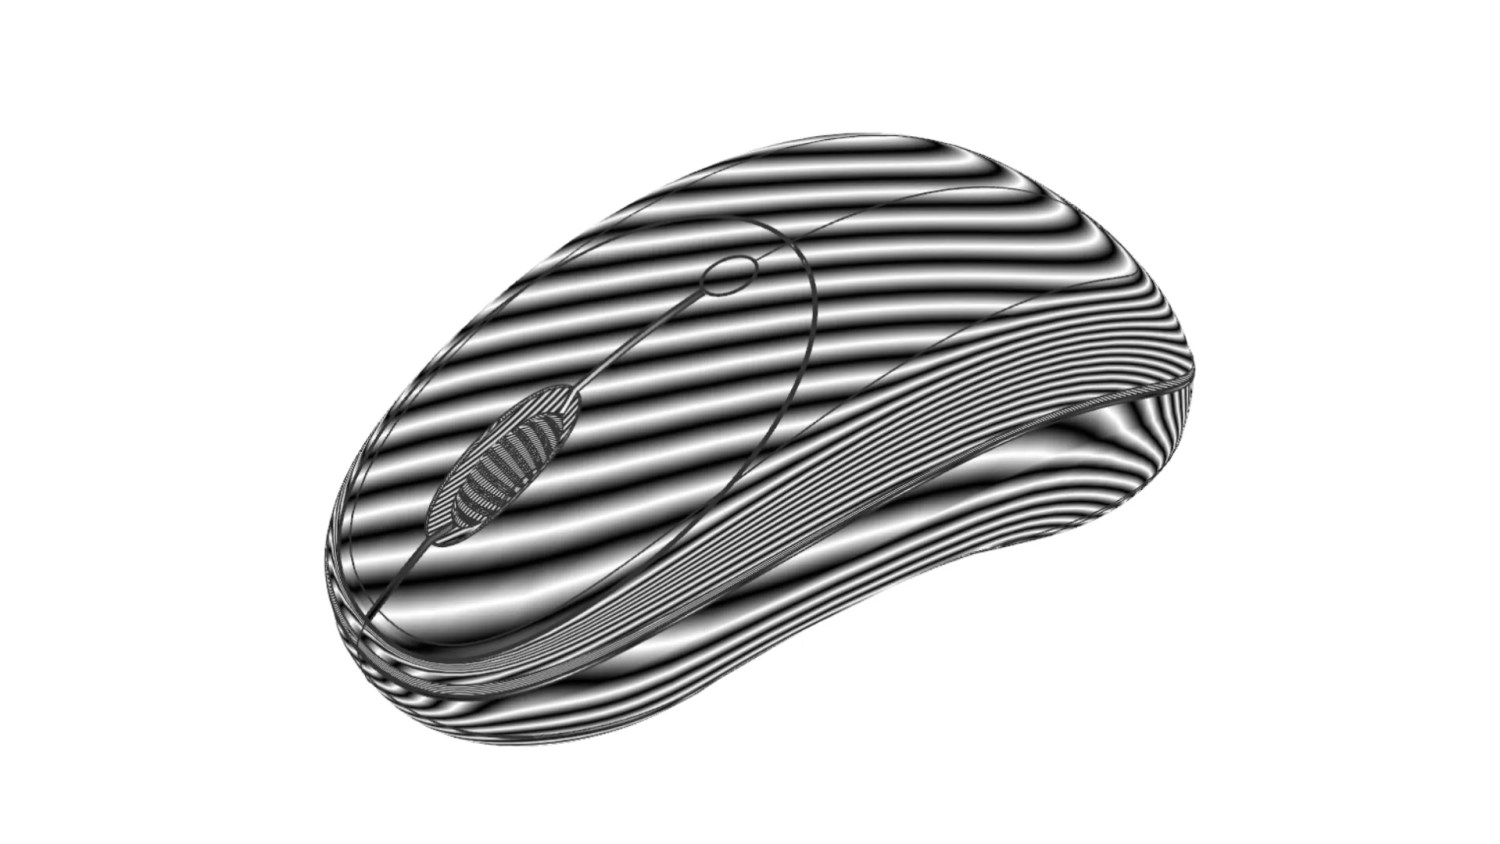 Computer Mouse - Industrial Design - Consulting Image